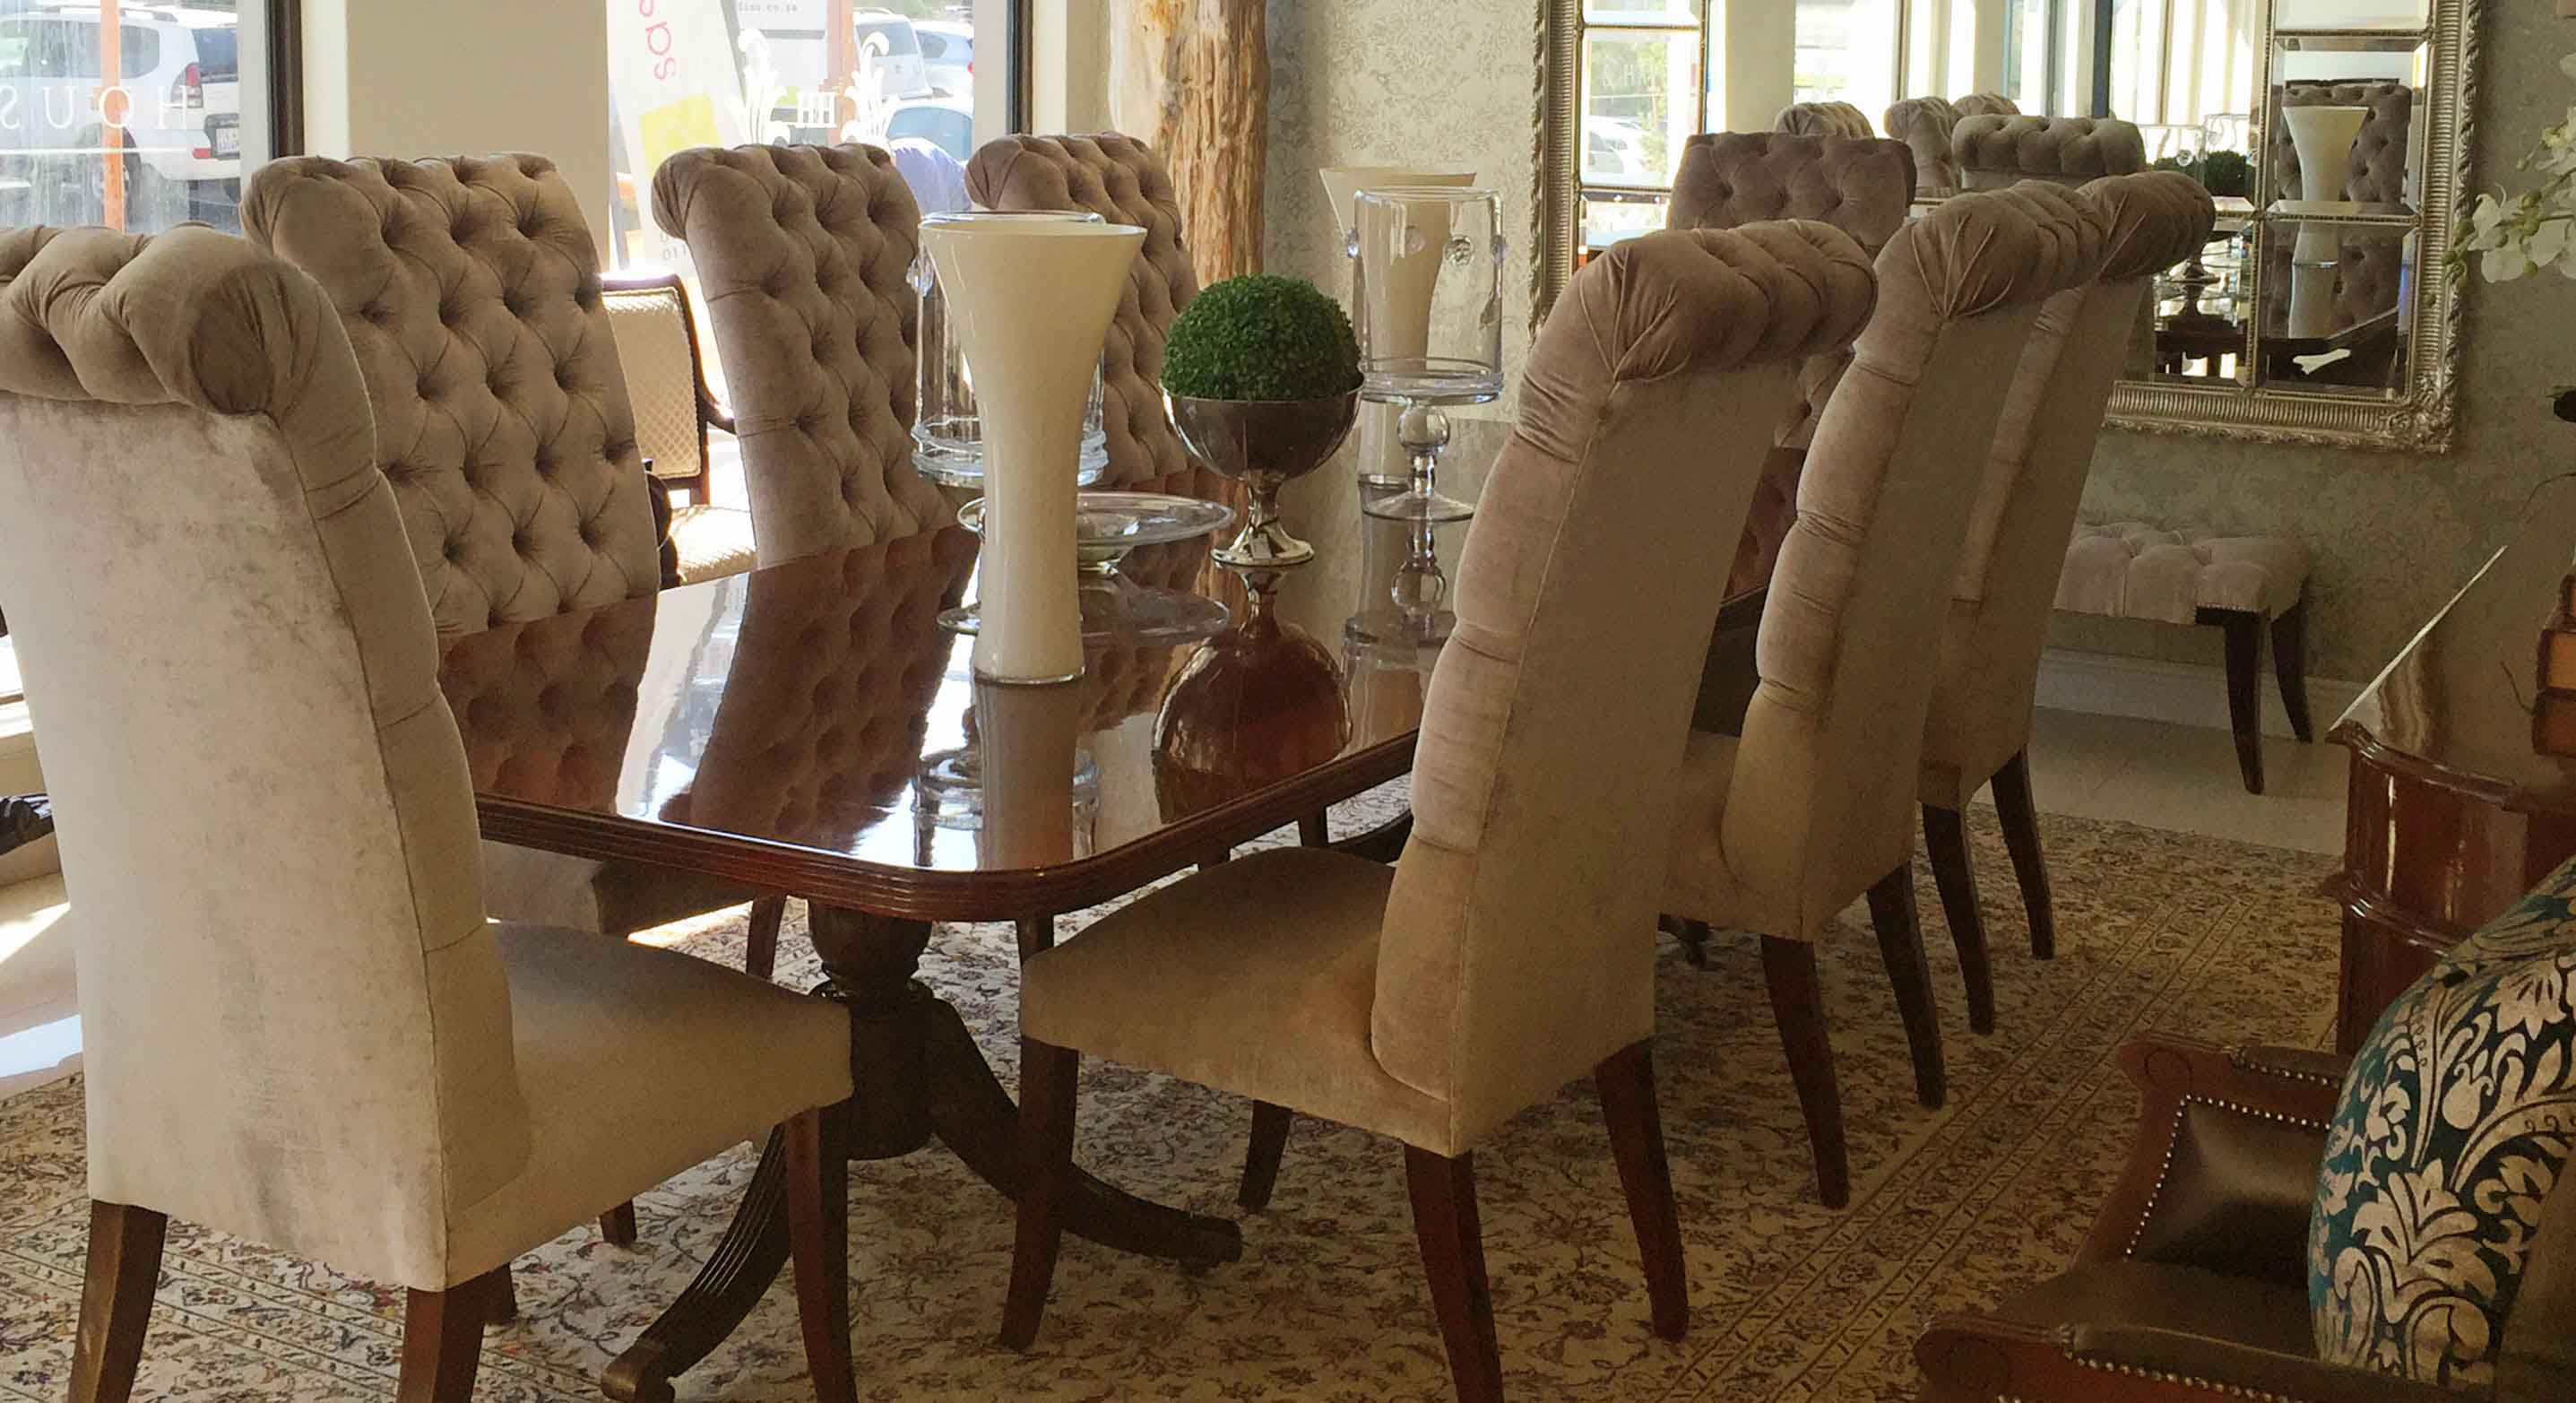 Home – House & Haven Regarding Haven Sofa Chairs (Image 18 of 25)